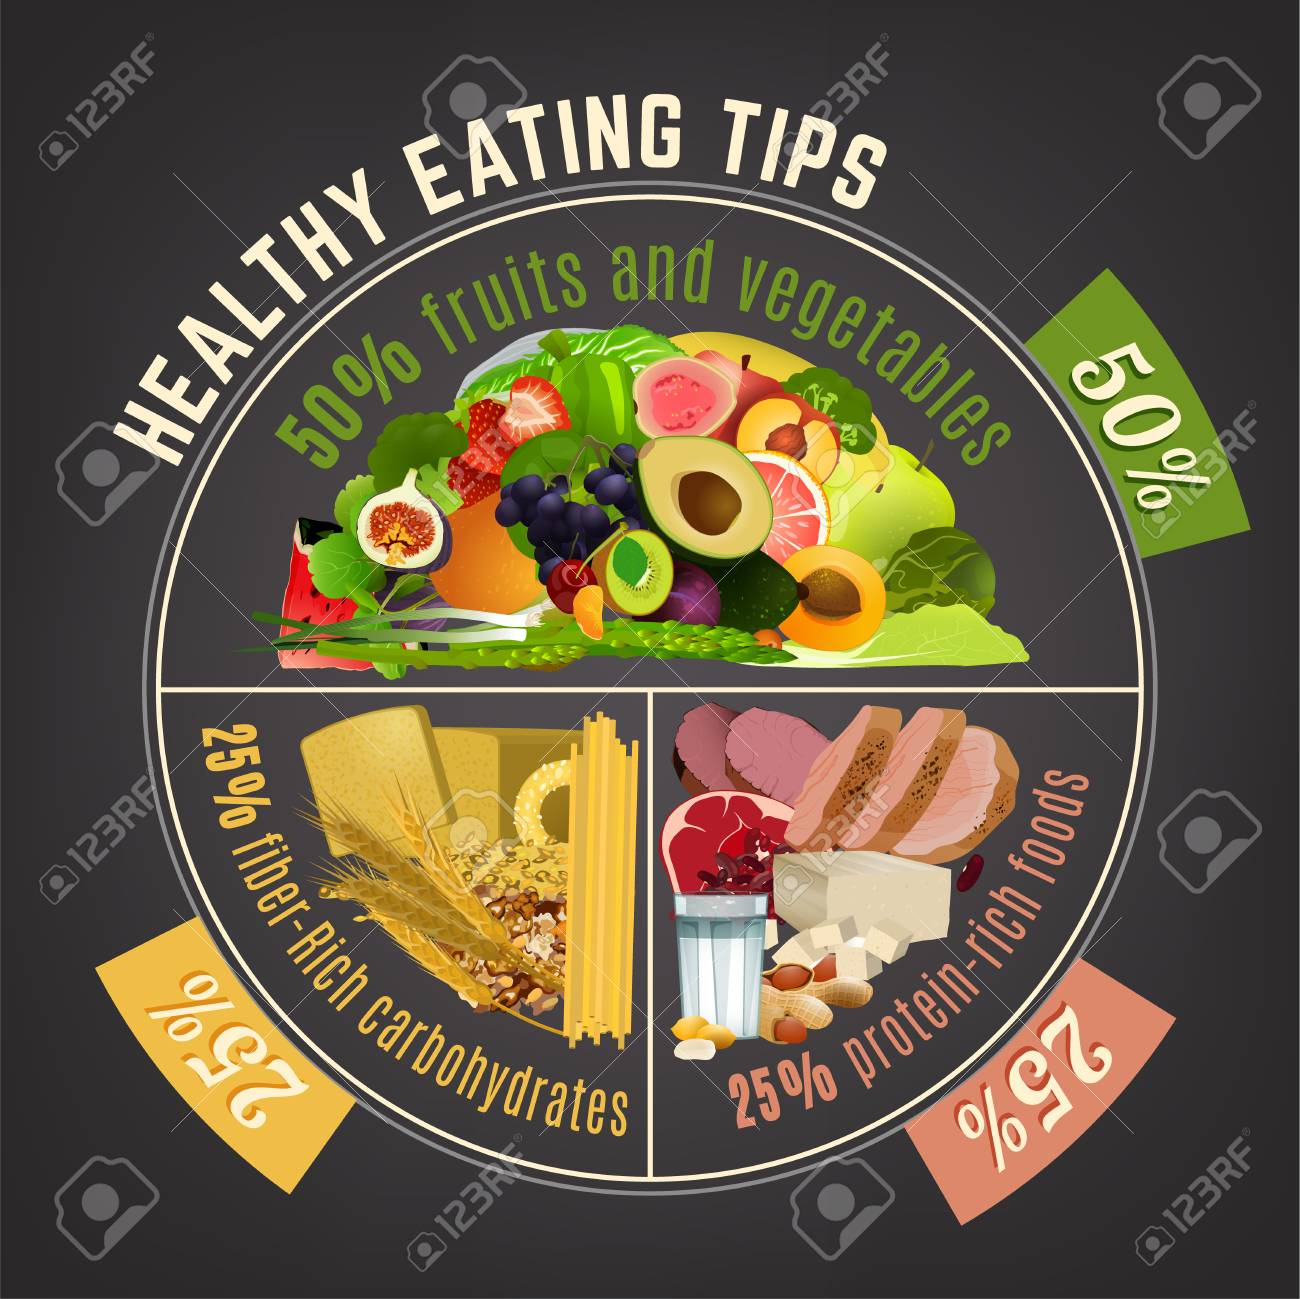 Healthy eating plate. Infographic chart with proper nutrition proportions. Food balance tips. Vector illustration isolated on a dark grey background. - 103528930